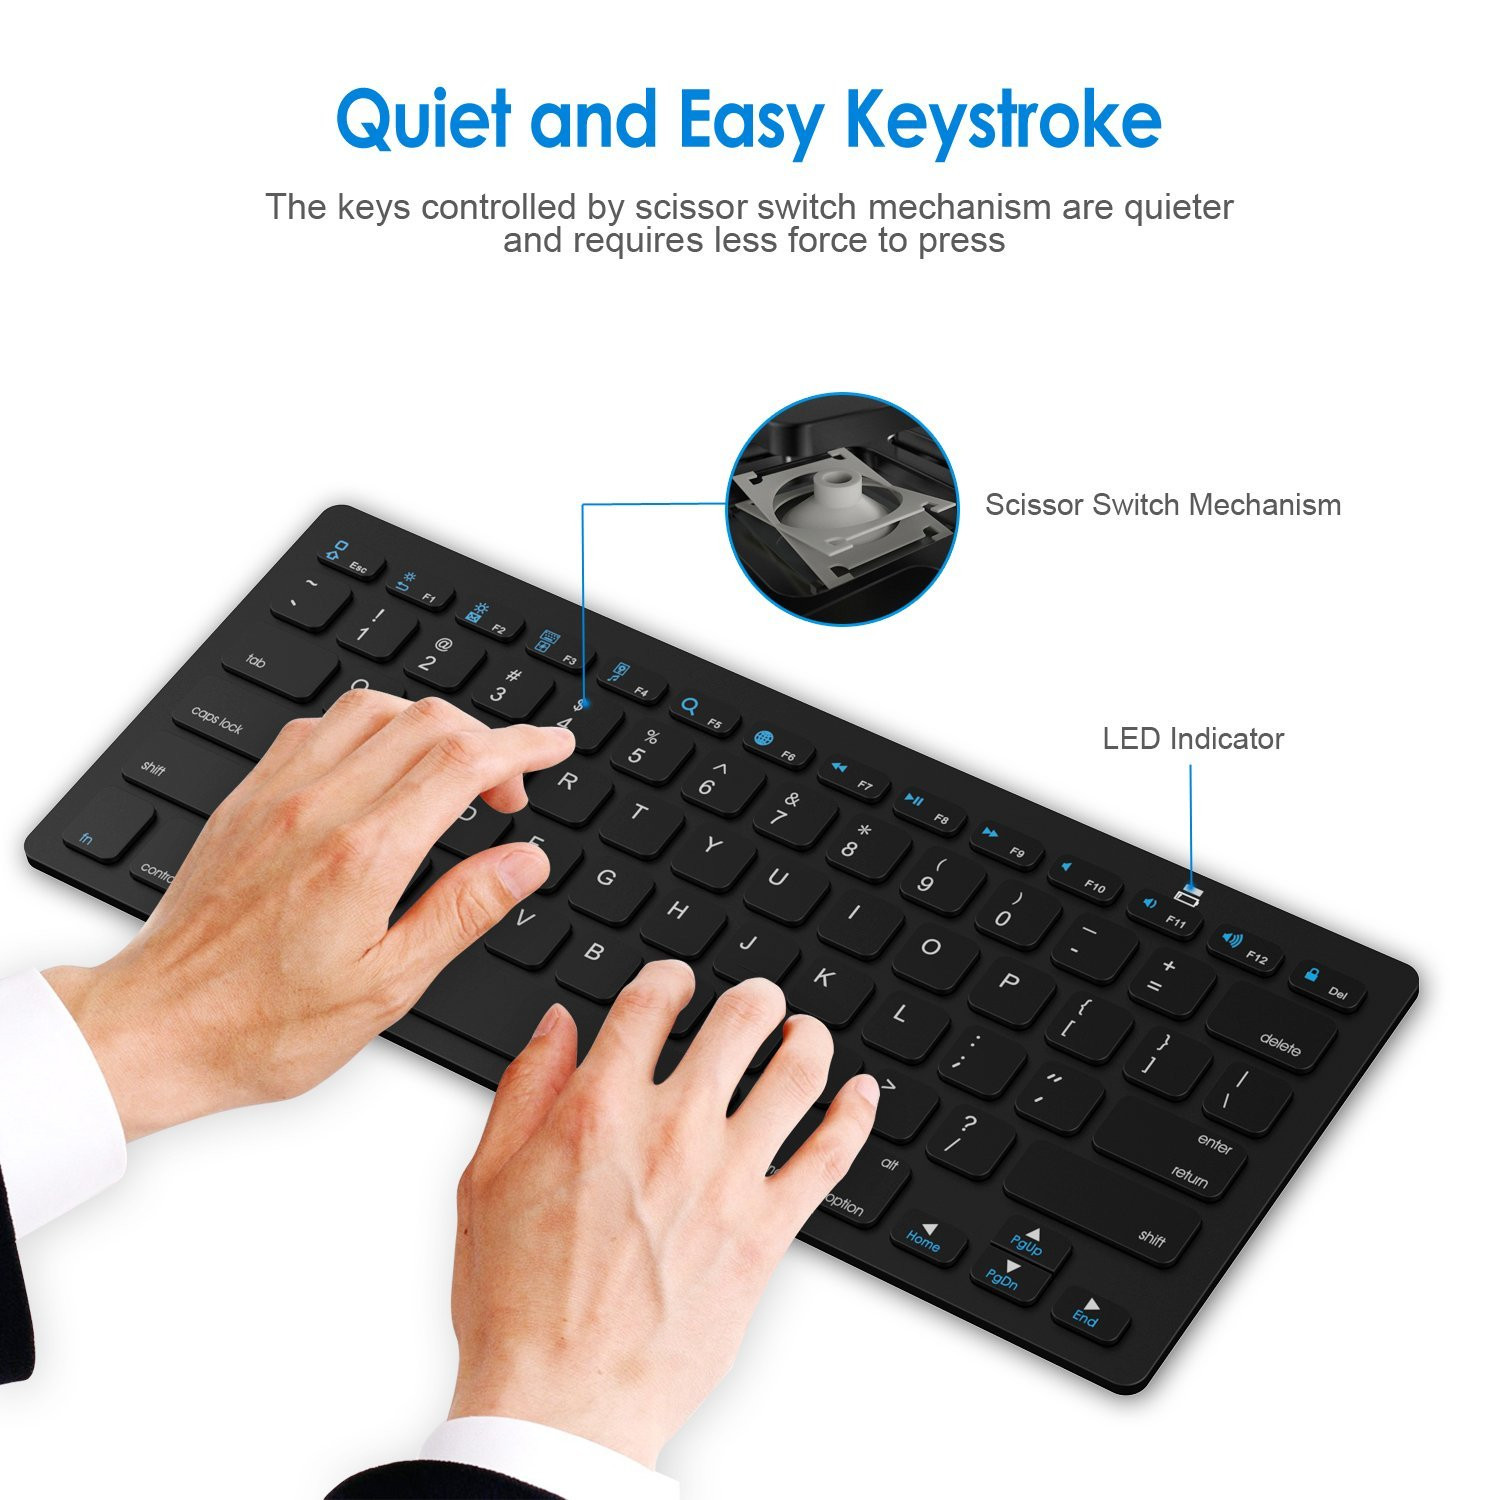 X5 78 Keys Slim bluetooth 3.0 Wireless Keyboard For iOS Android Windows Devices iPhone iPad Macbook Samsung